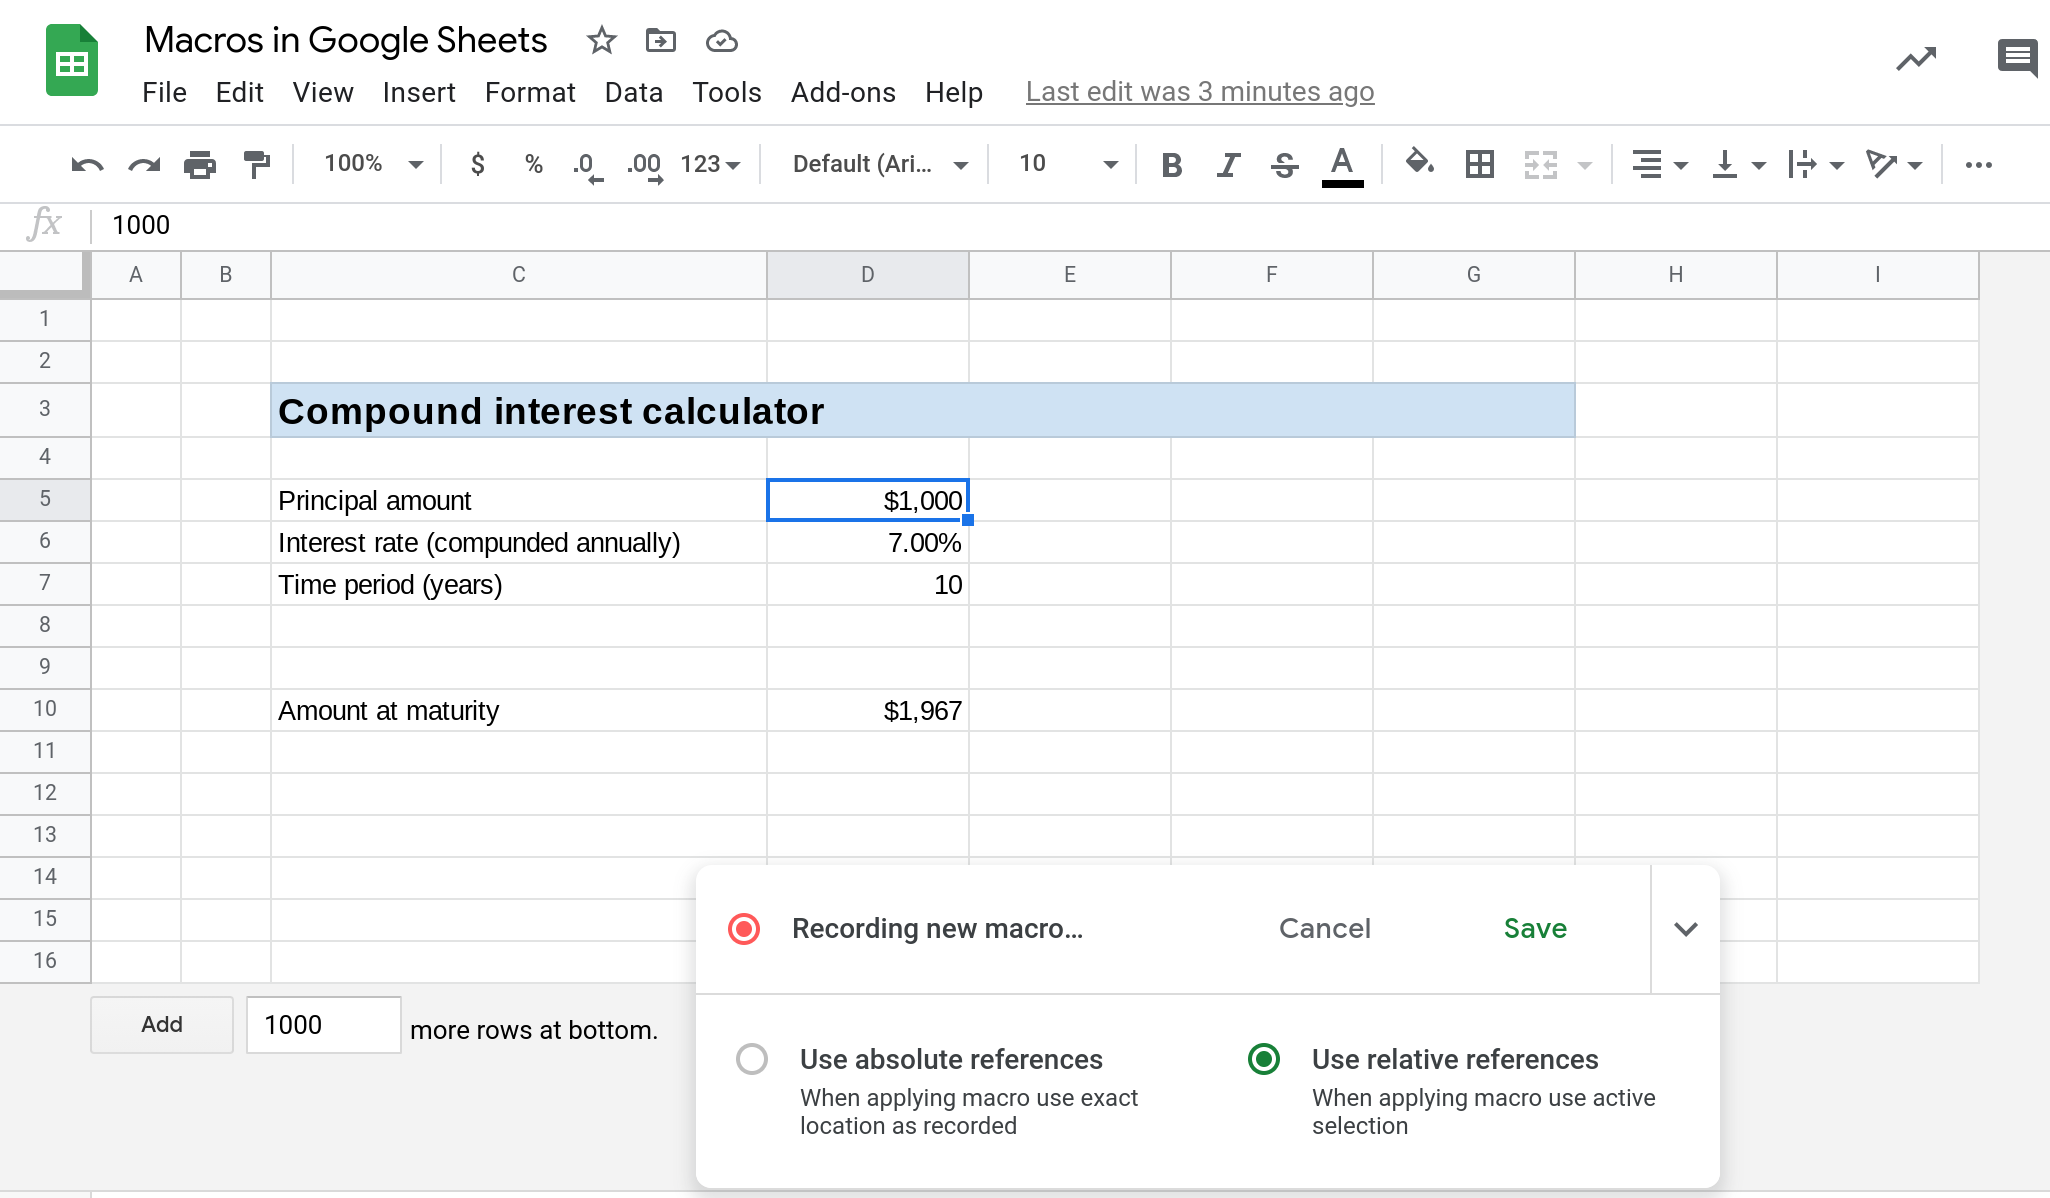 A screenshot showing a macro being recorded in Google Sheets.